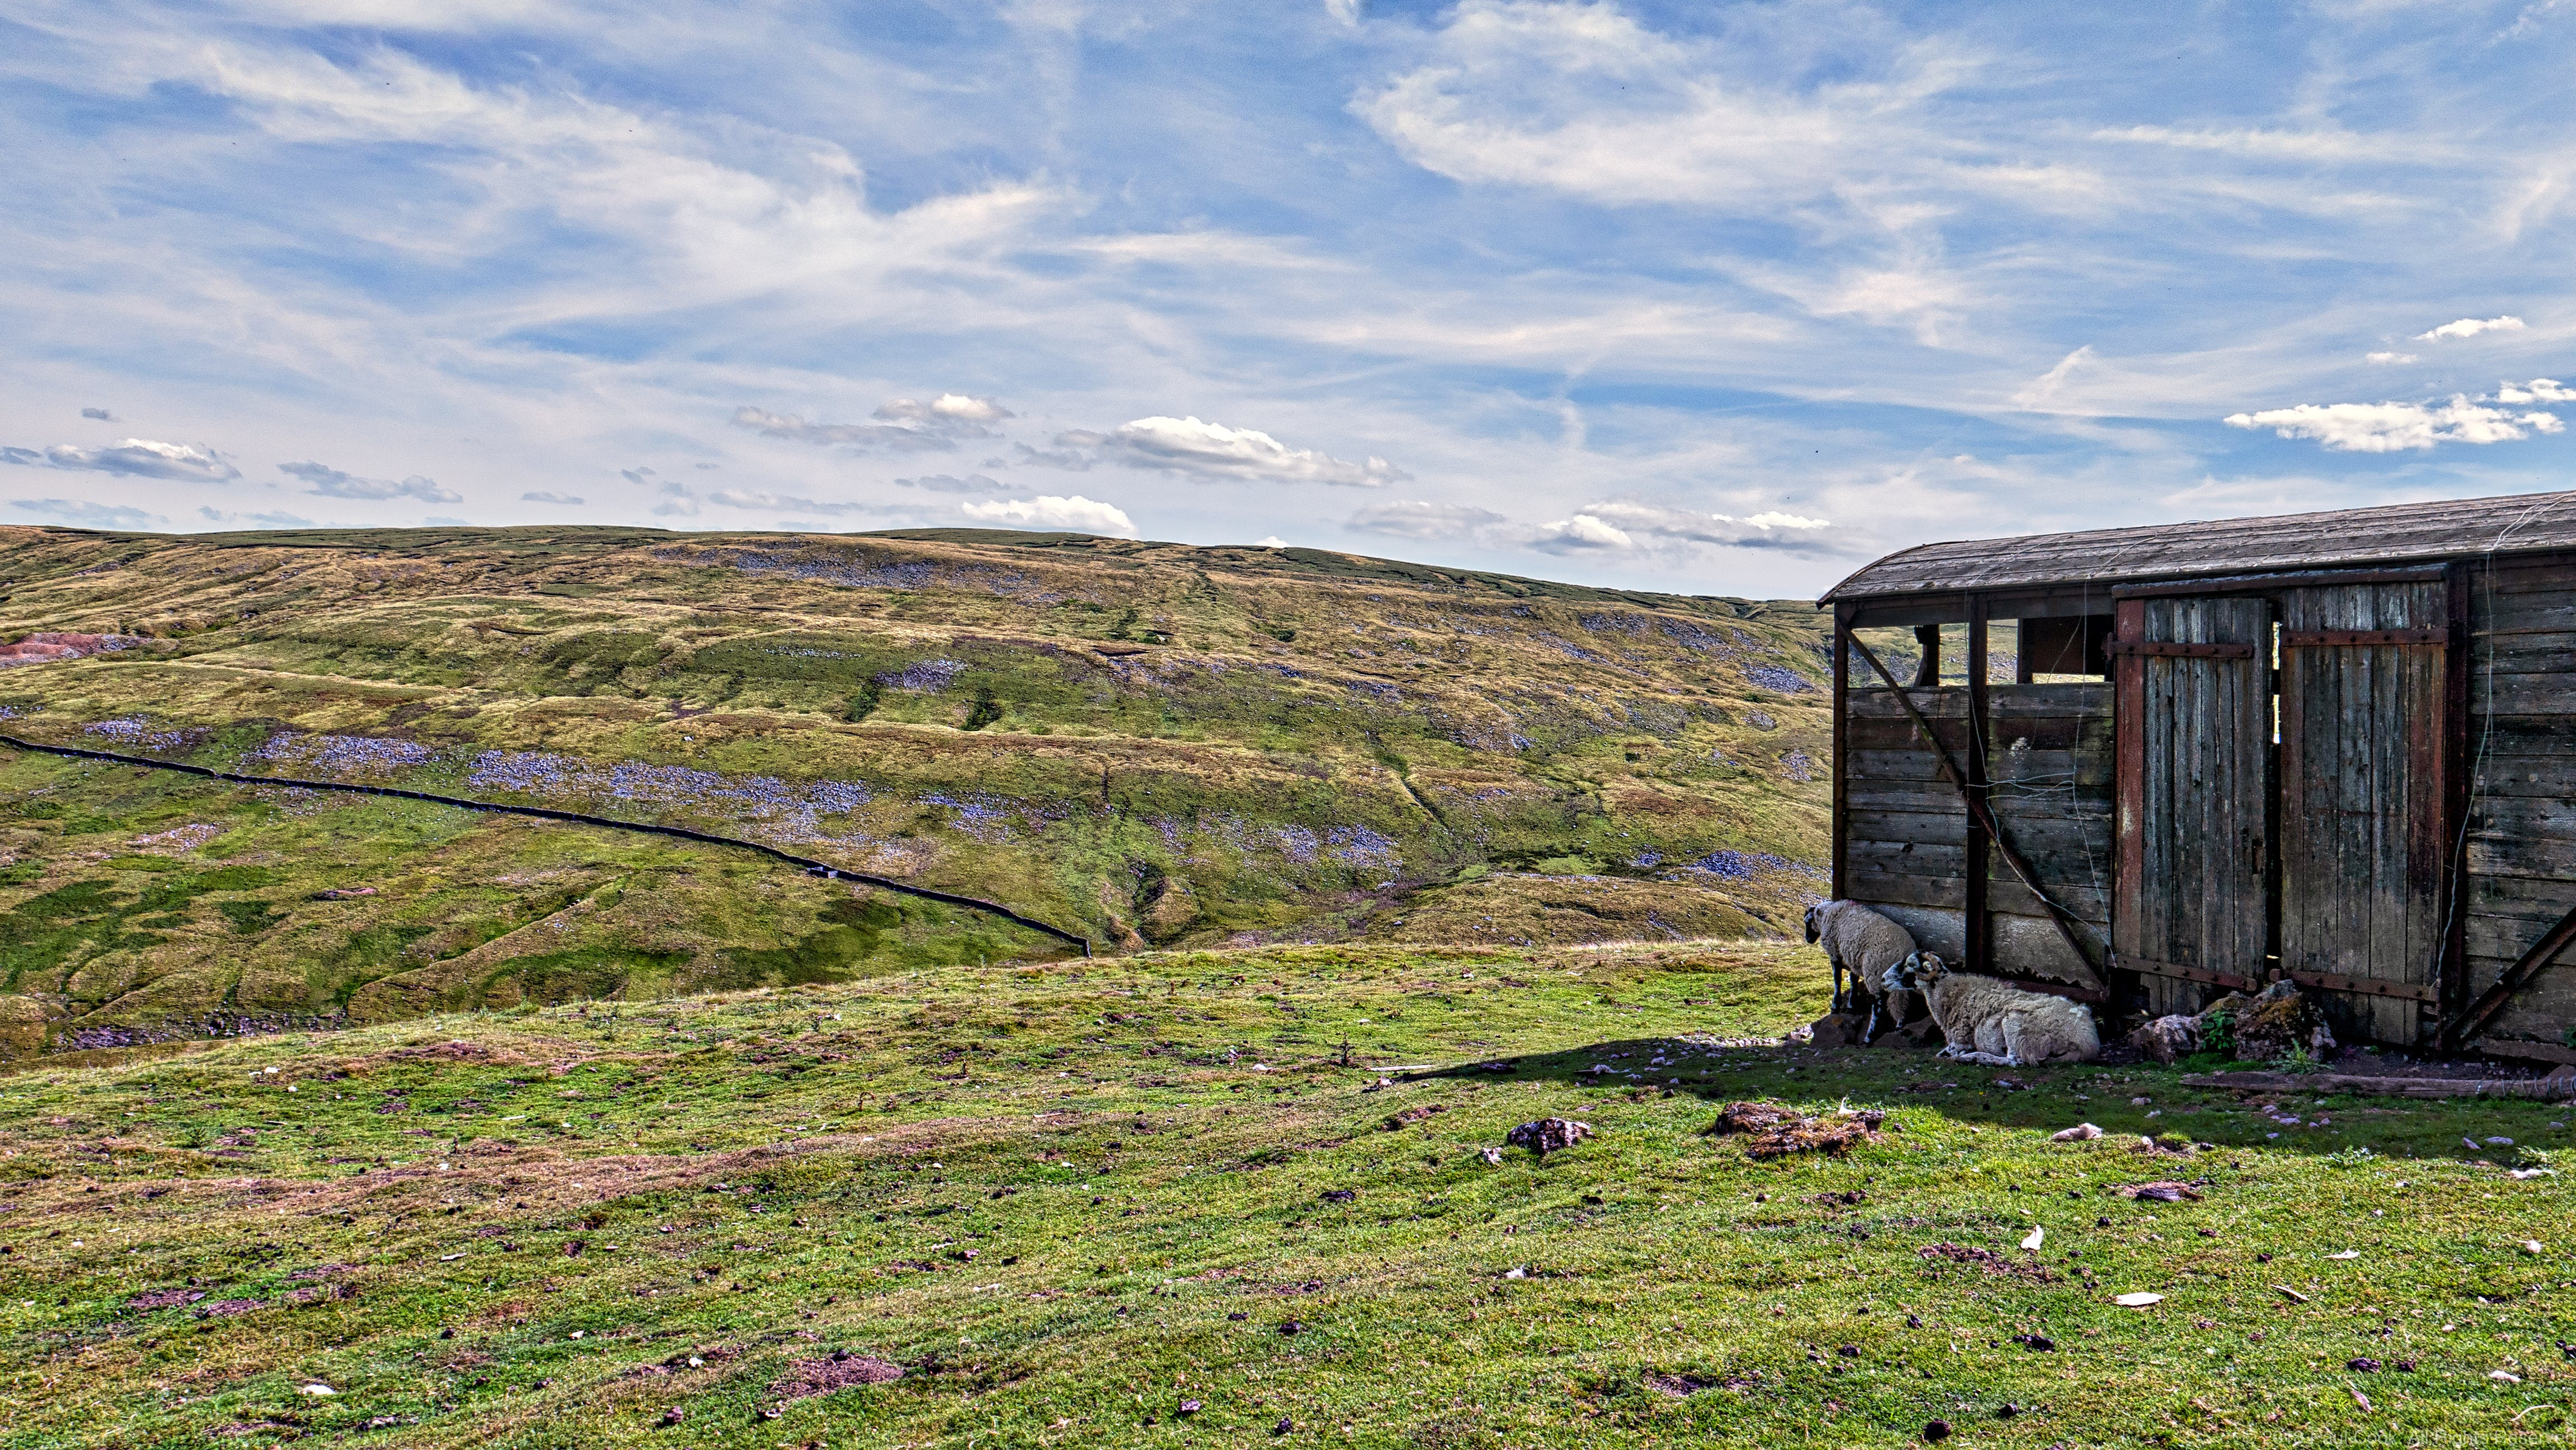 Free stock photo of Buttertub Pass landscape, shack, shed, sheep